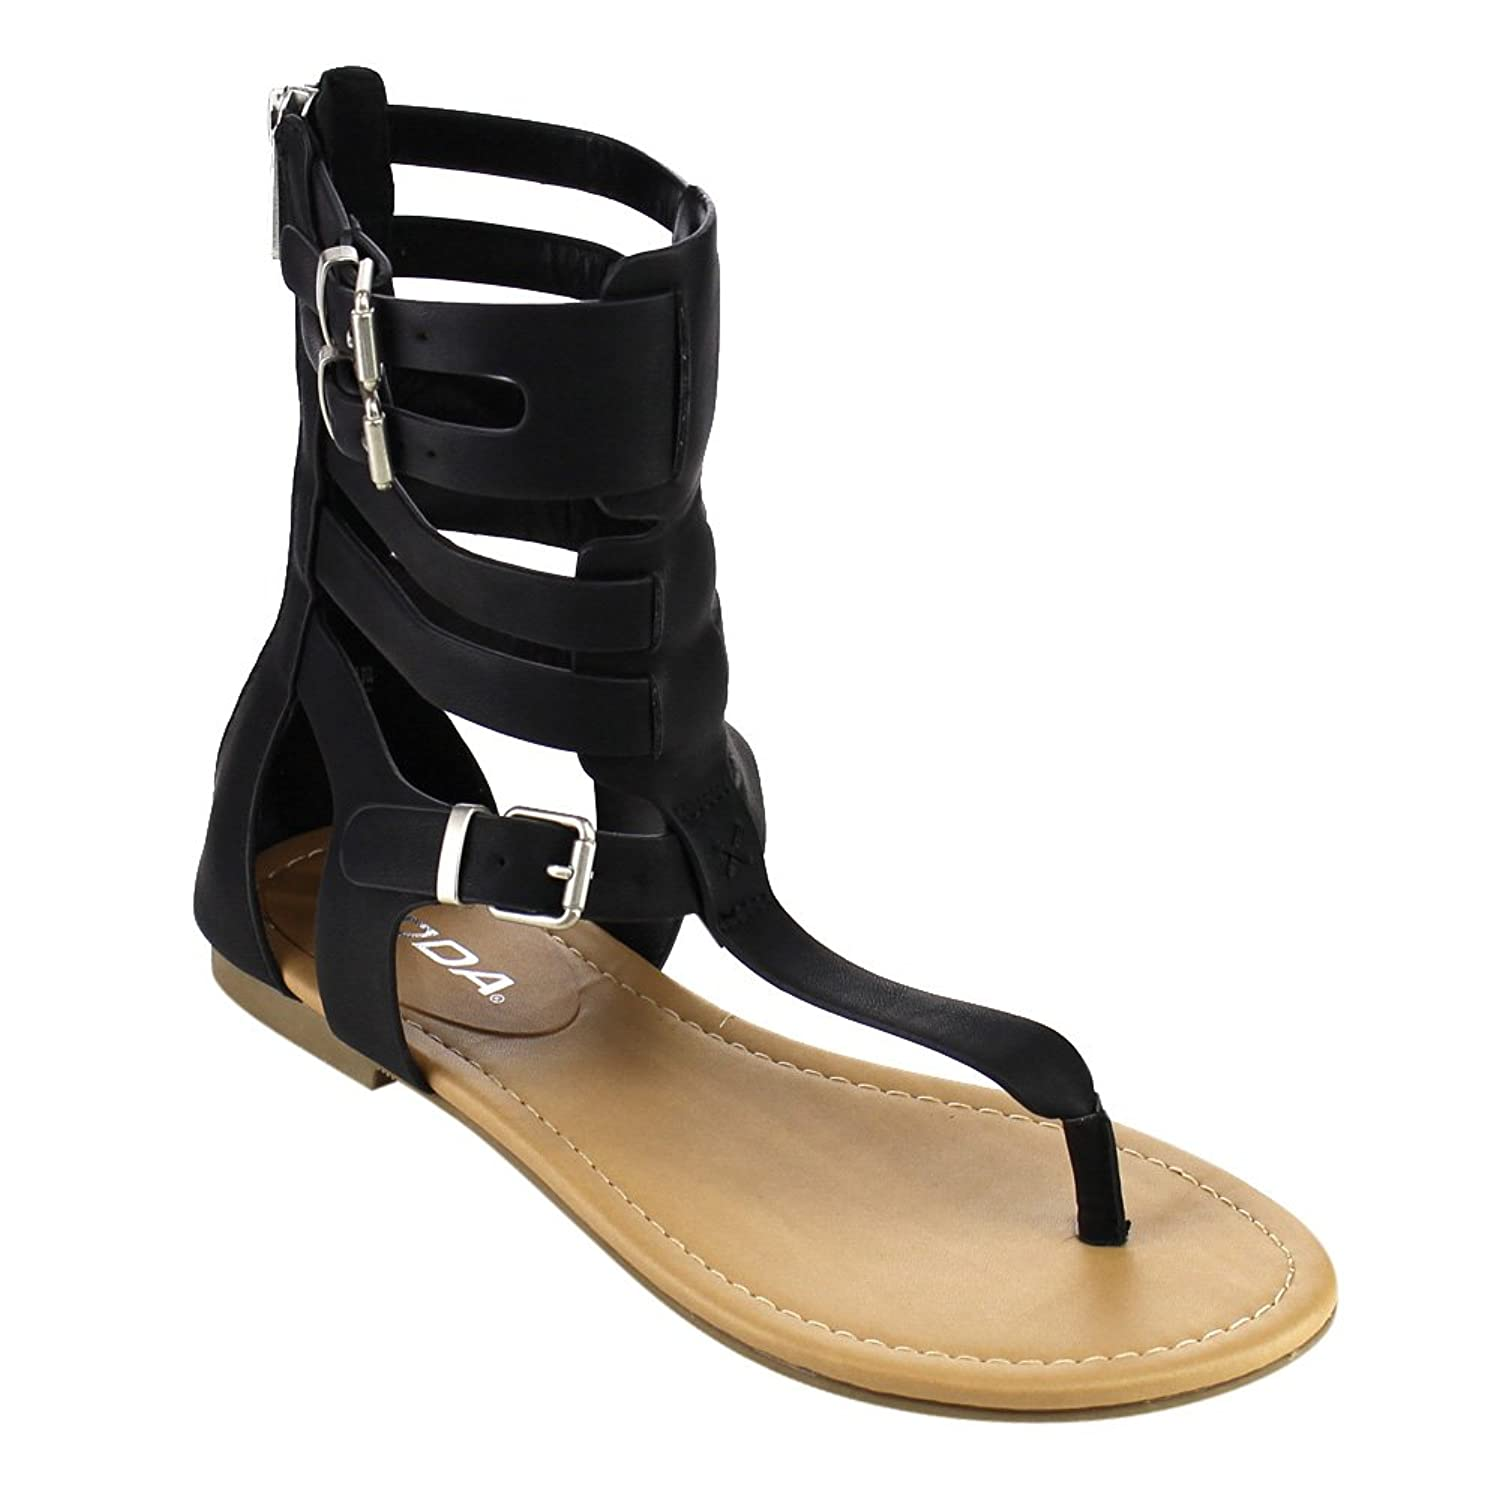 259cd63f93e8 Women s Shoes T-strap Caged Buckled Flat Thong Sandals Open Toe Back Zipper  One Size